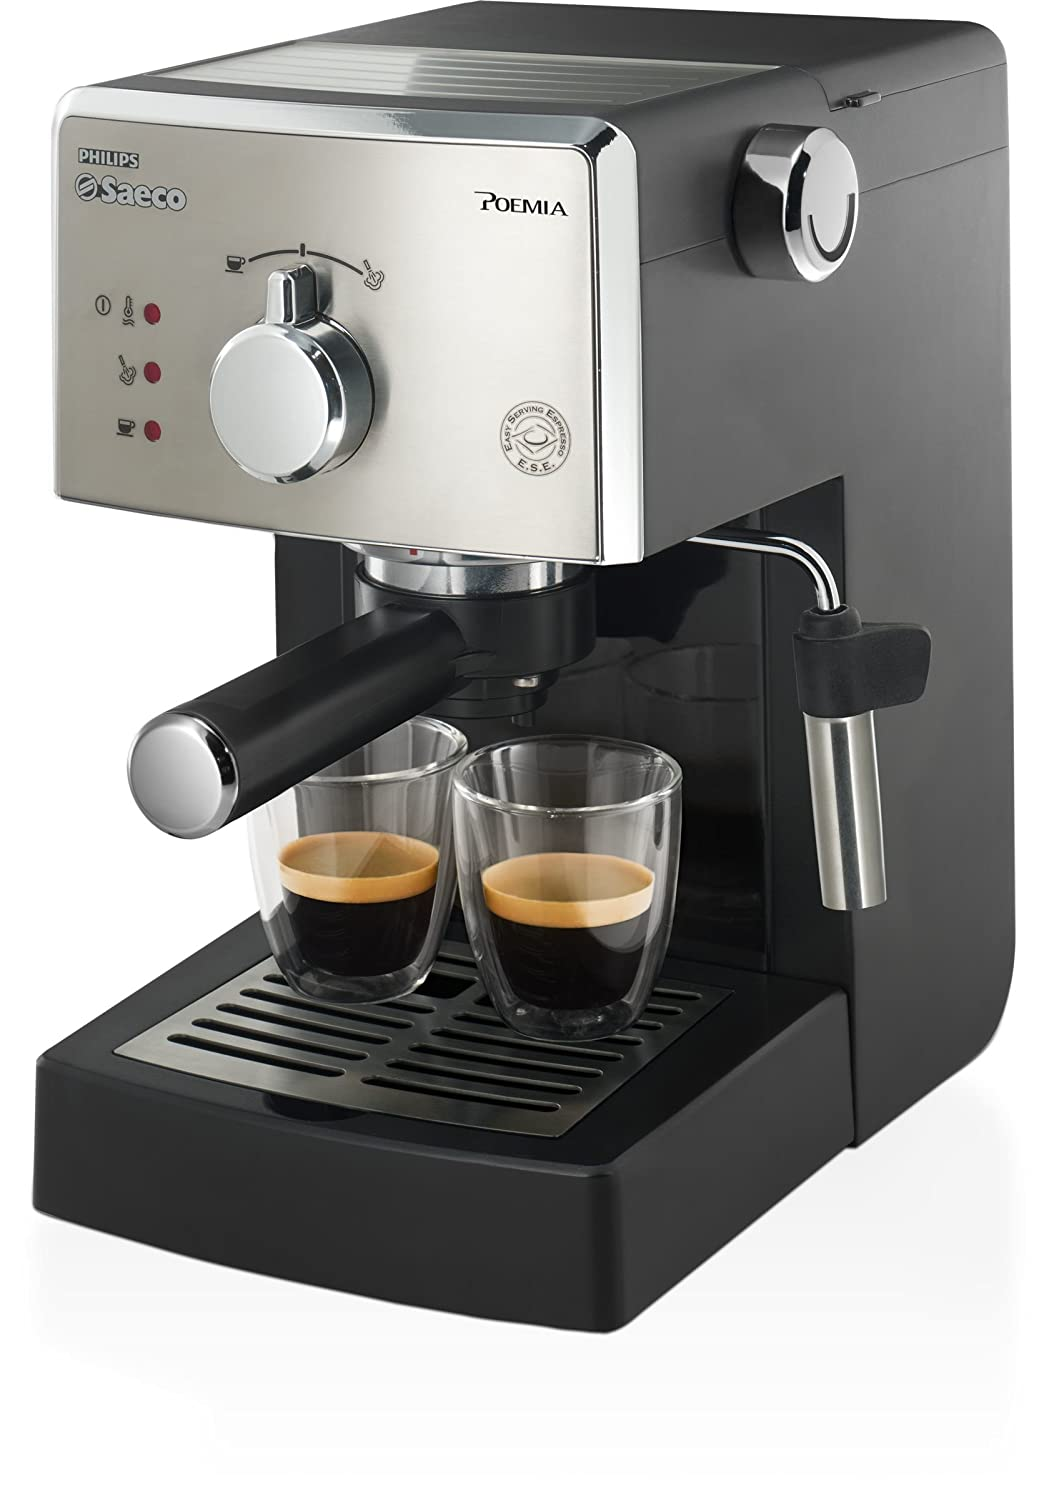 Philips Saeco Poemia - Cafetera espresso manual